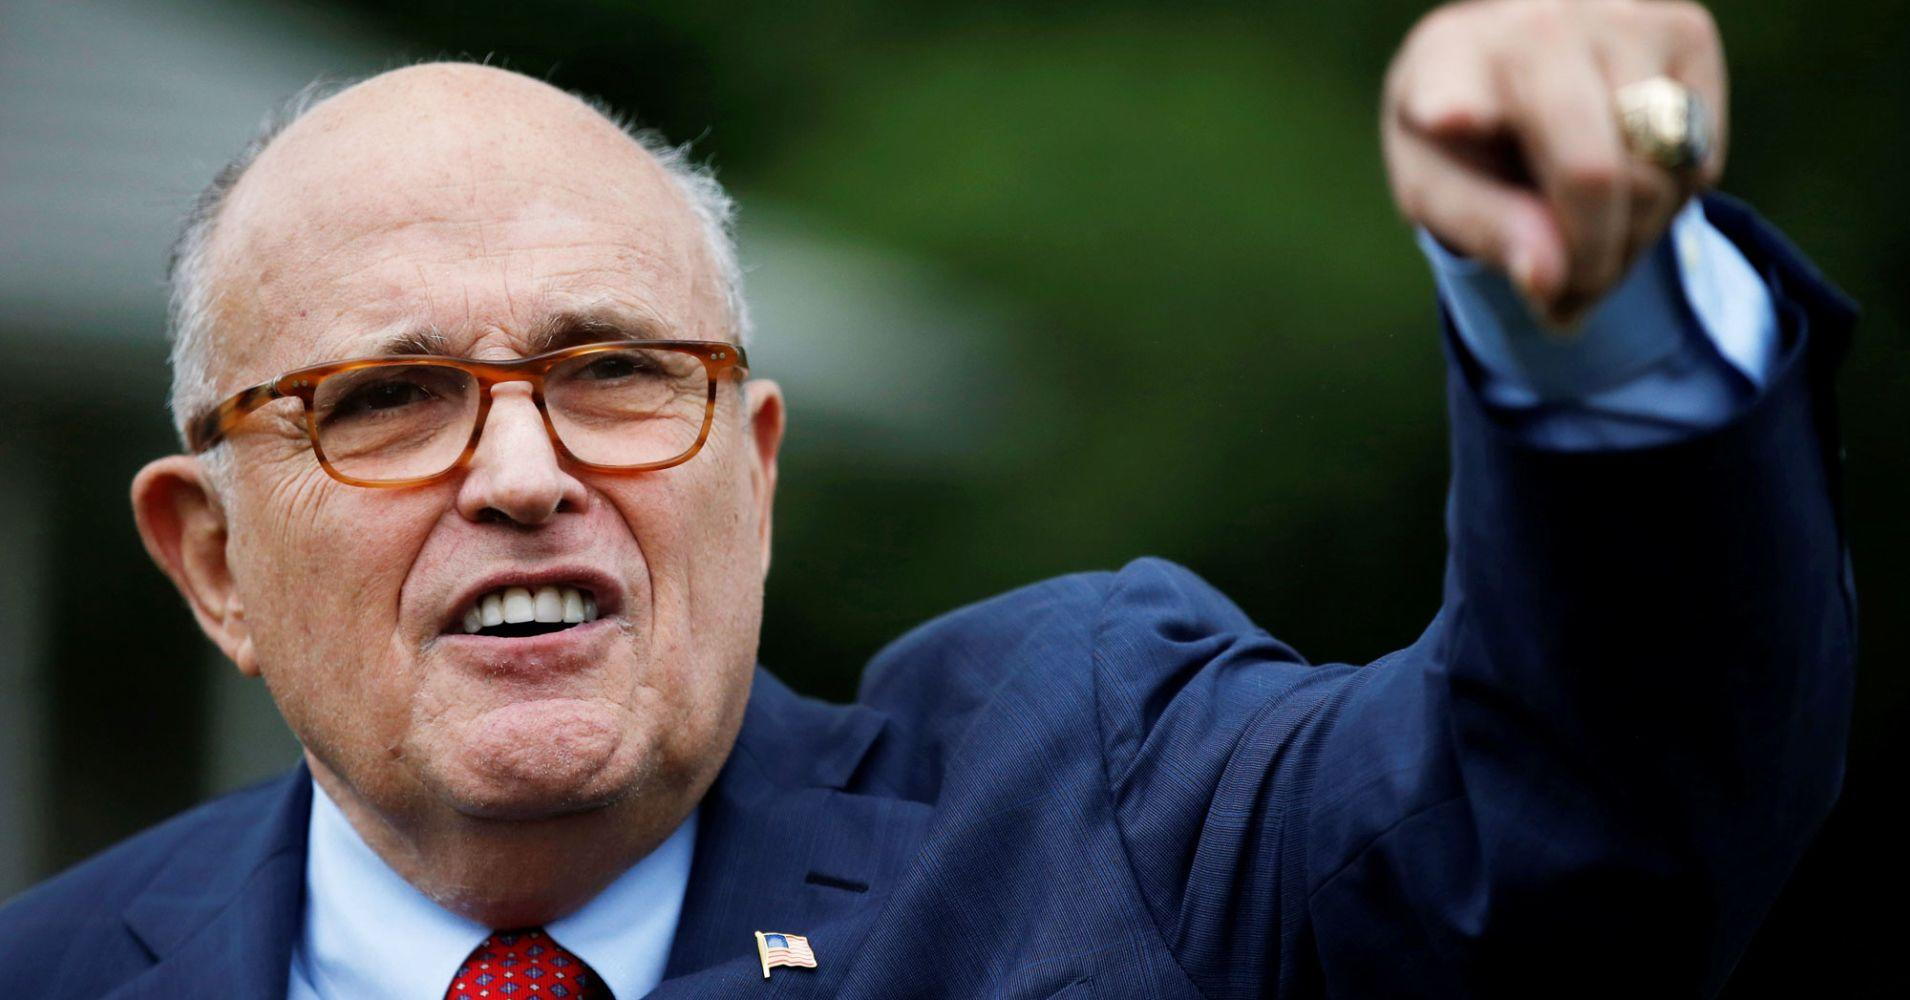 Rudy Giuliani on Mueller report: 'There's nothing wrong with taking information from Russians'